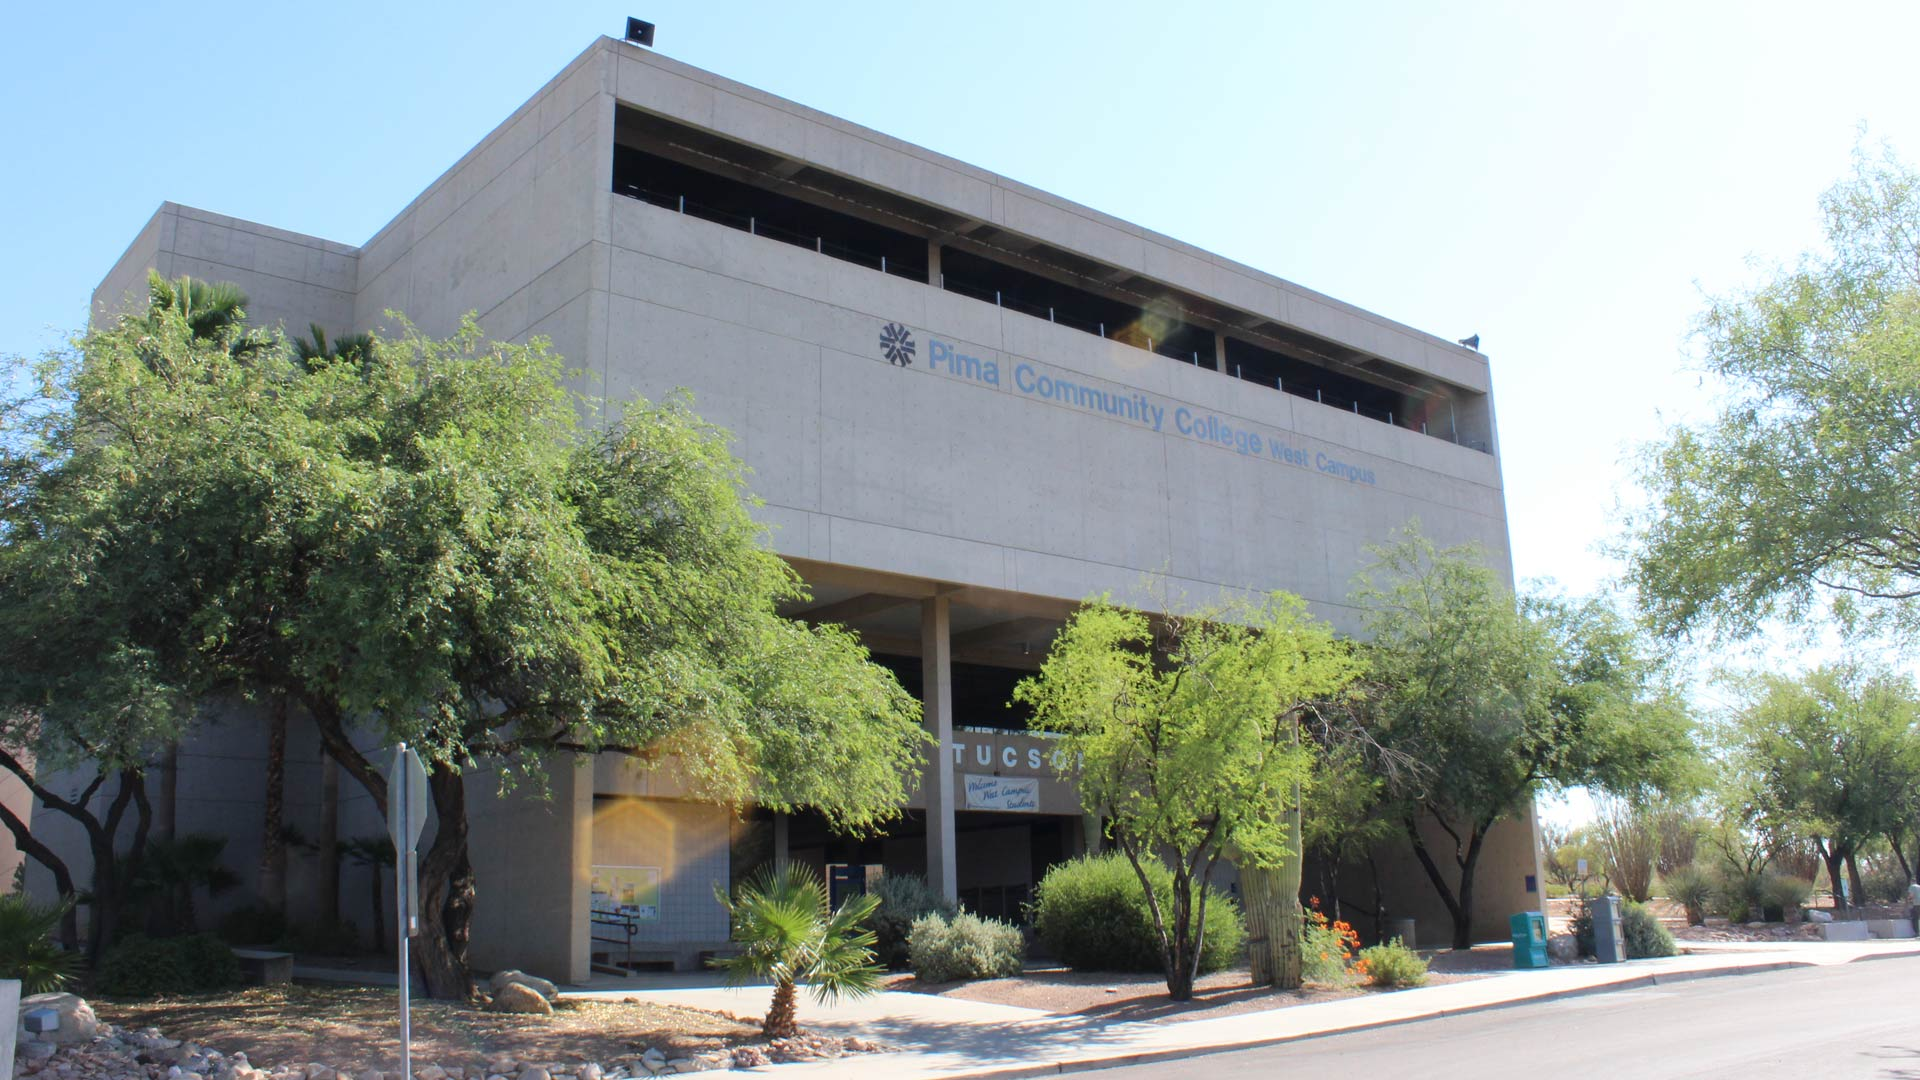 A building on the campus of Pima Community College, West.